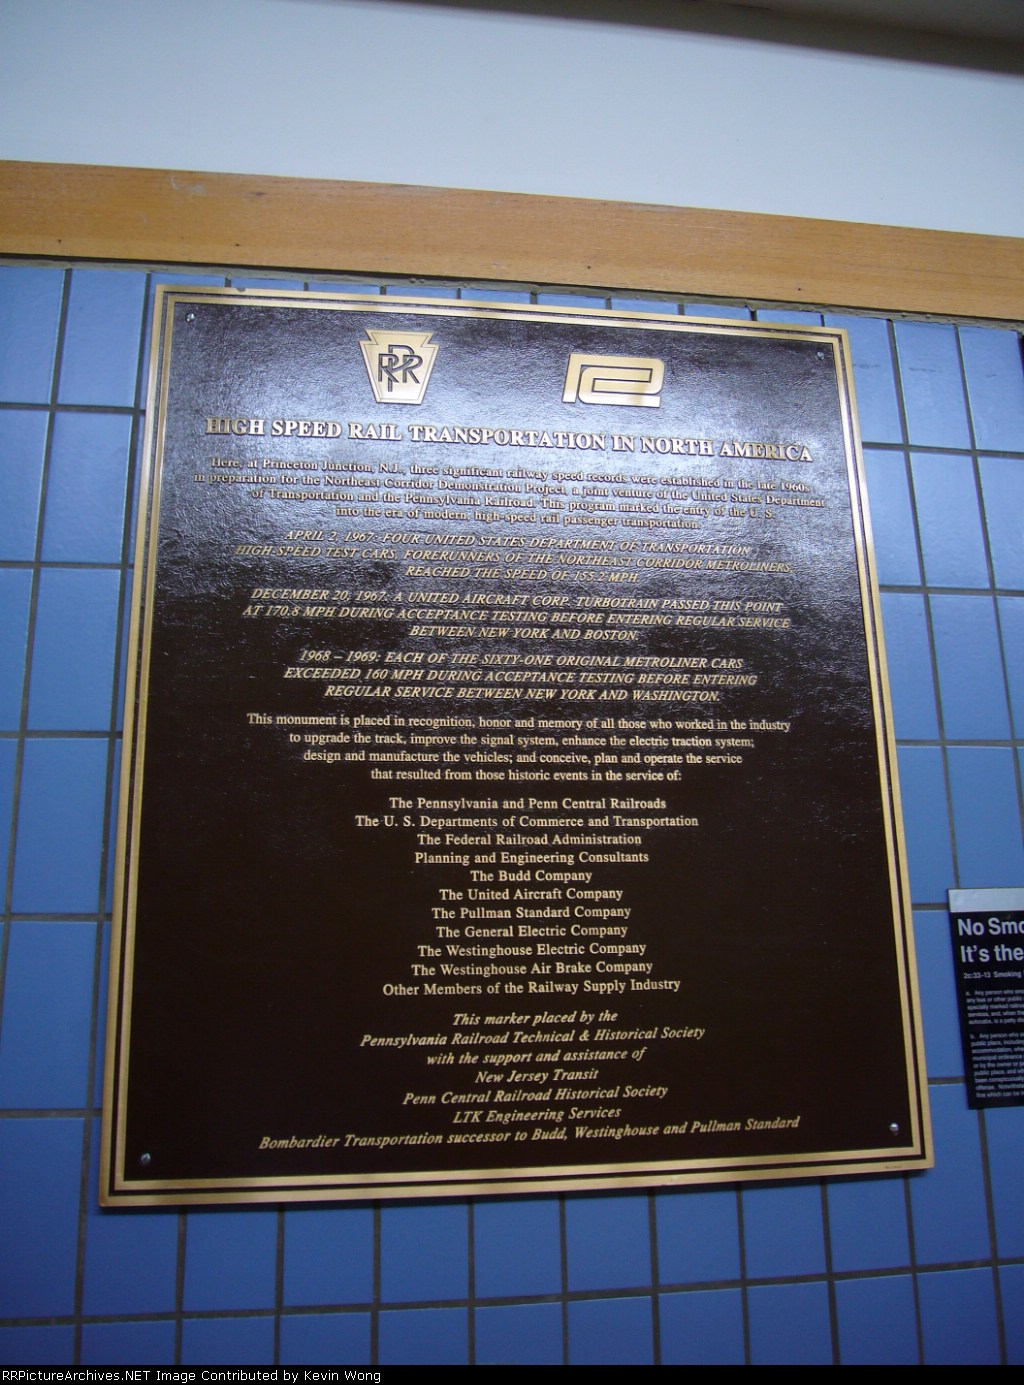 High speed rail commemorative plaque in Princeton Junction station